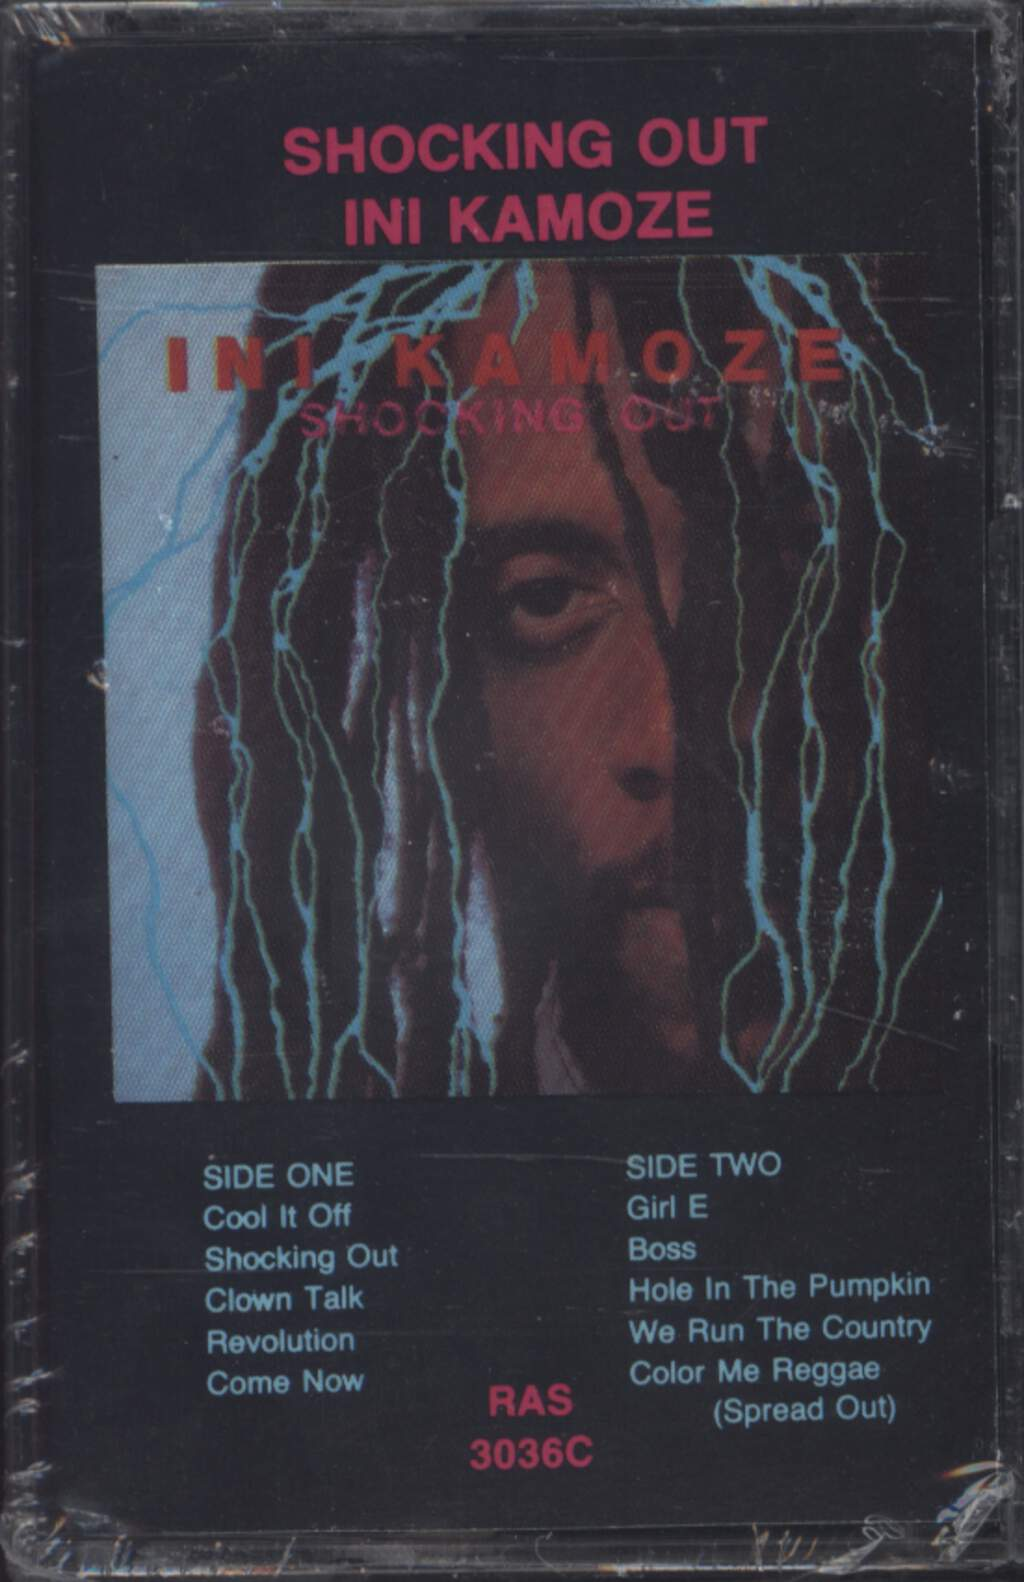 Ini Kamoze: Shocking Out, Compact Cassette